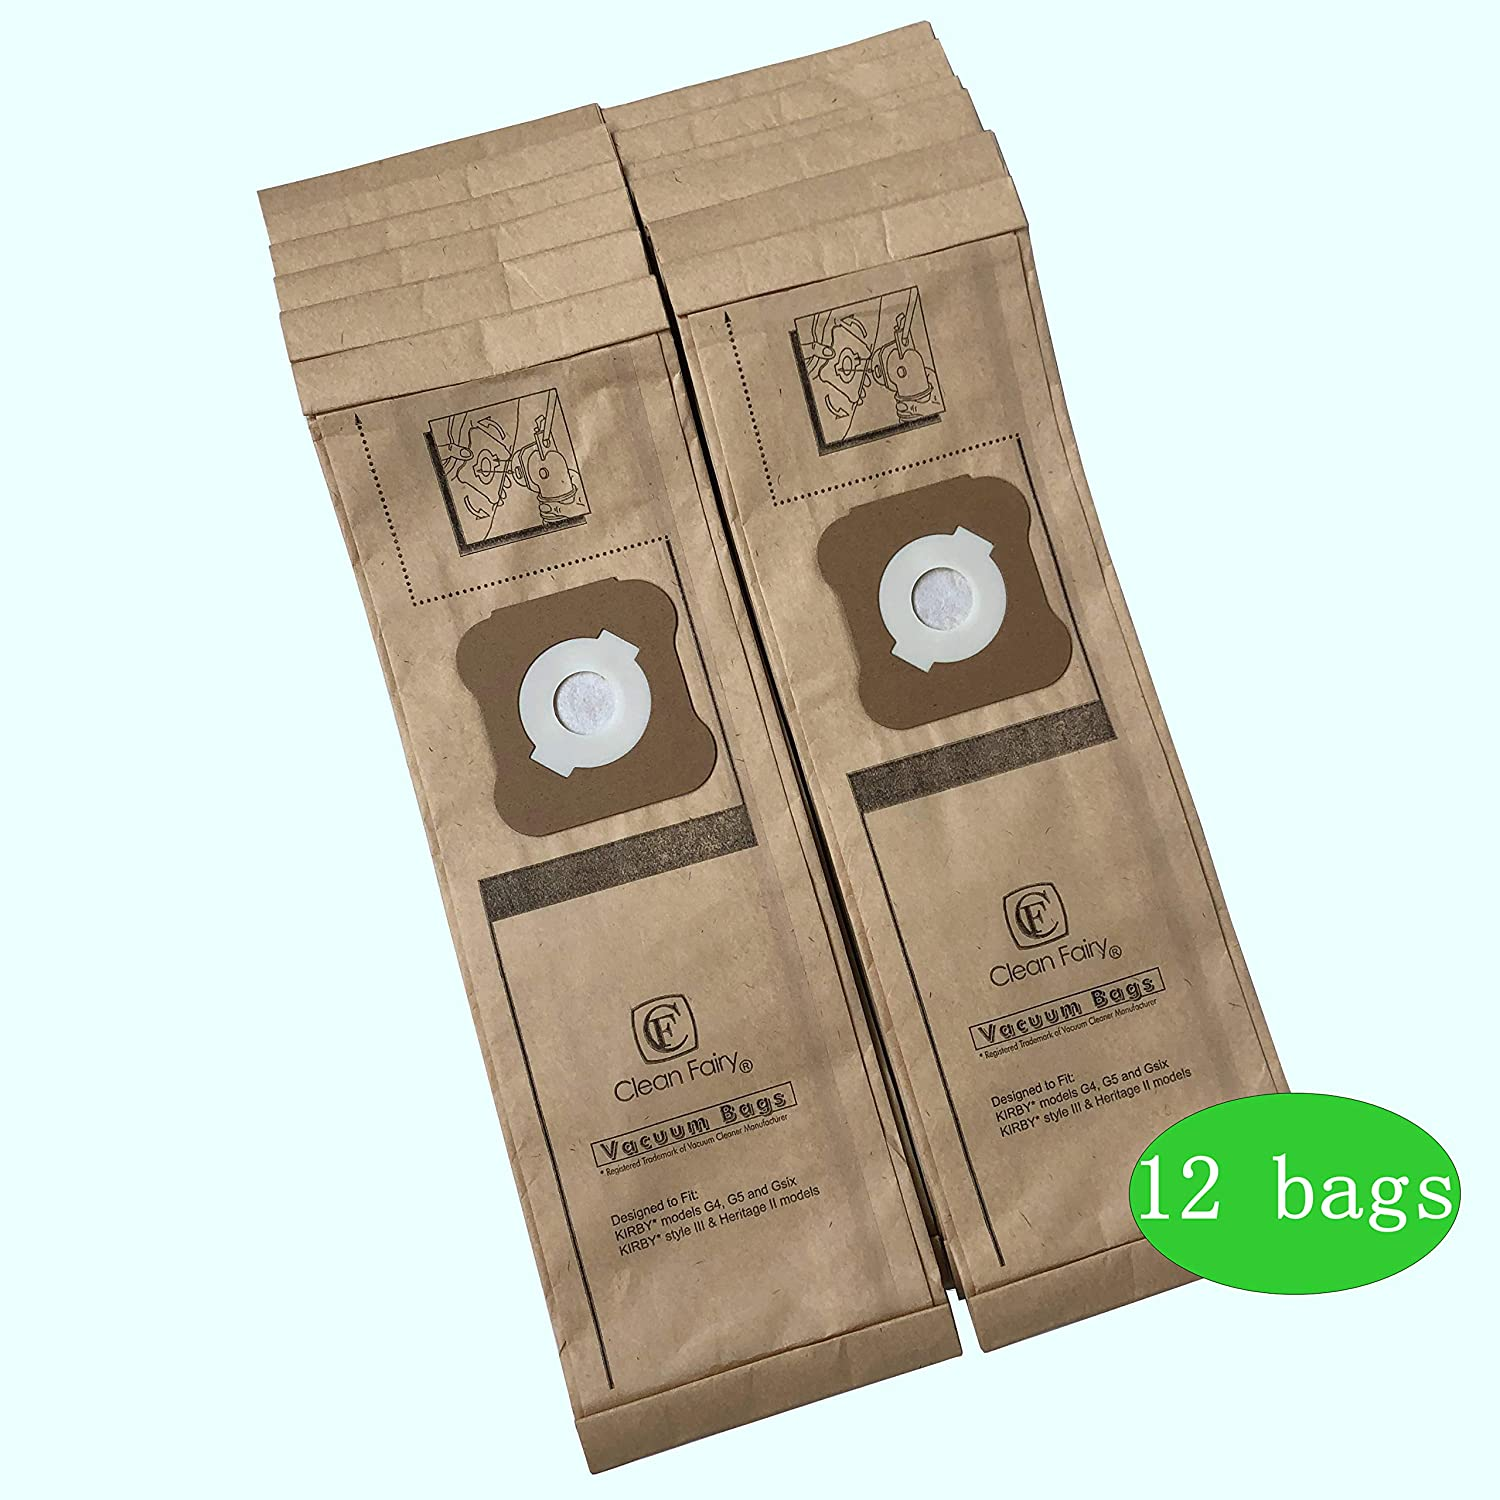 Clean Fairy Micro-Lined Vacuum Bags Style G Fit for Kirby Models G3 G4 G5 Gsix G7 and Style III & Heritage II Models Replacement Kirby Part#197294 197394 (12 Bags)